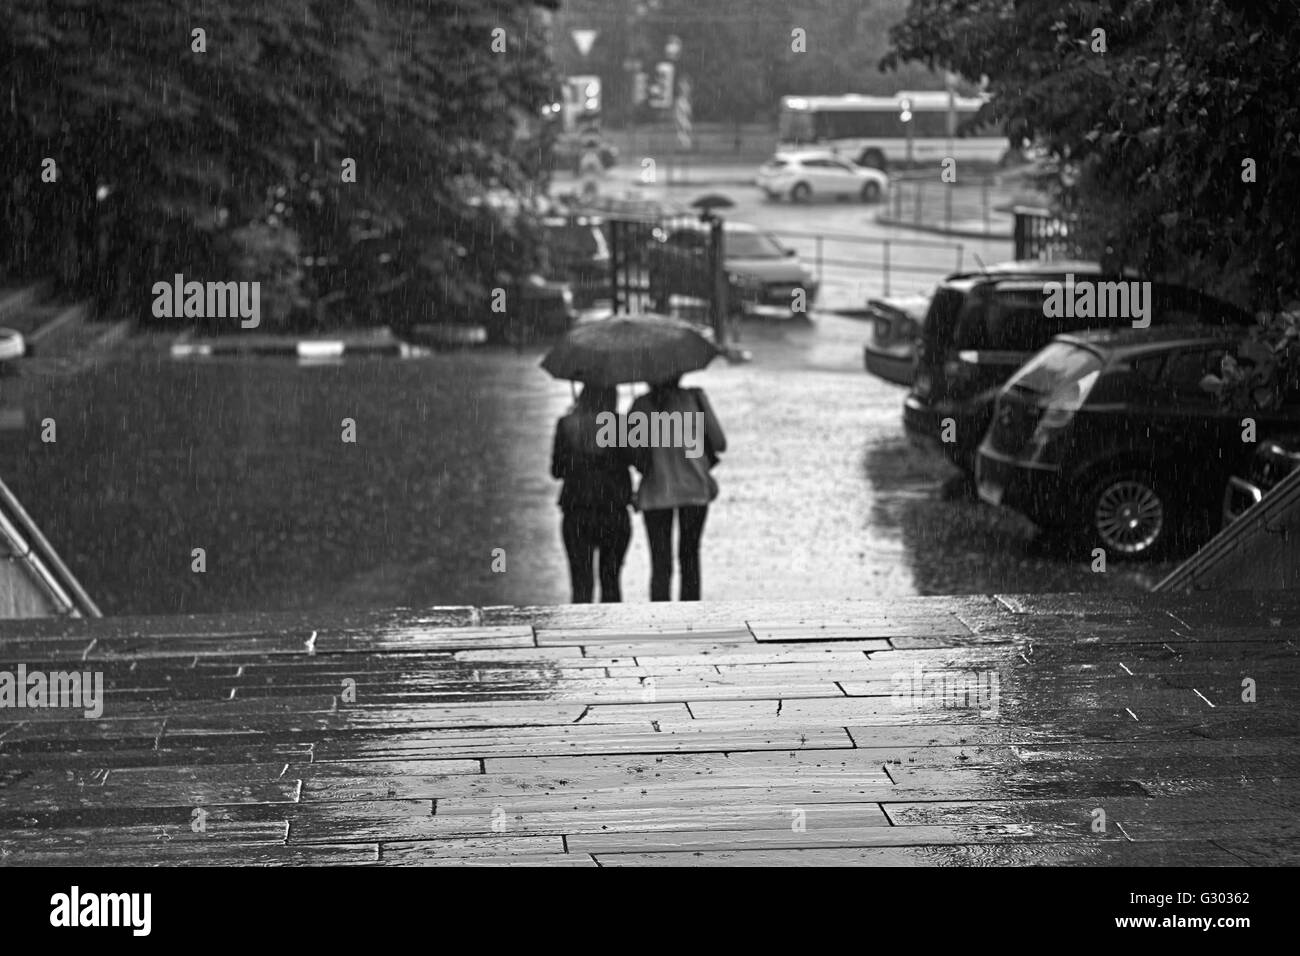 Walking in the rain. Silhouettes of people in the rain - Stock Image